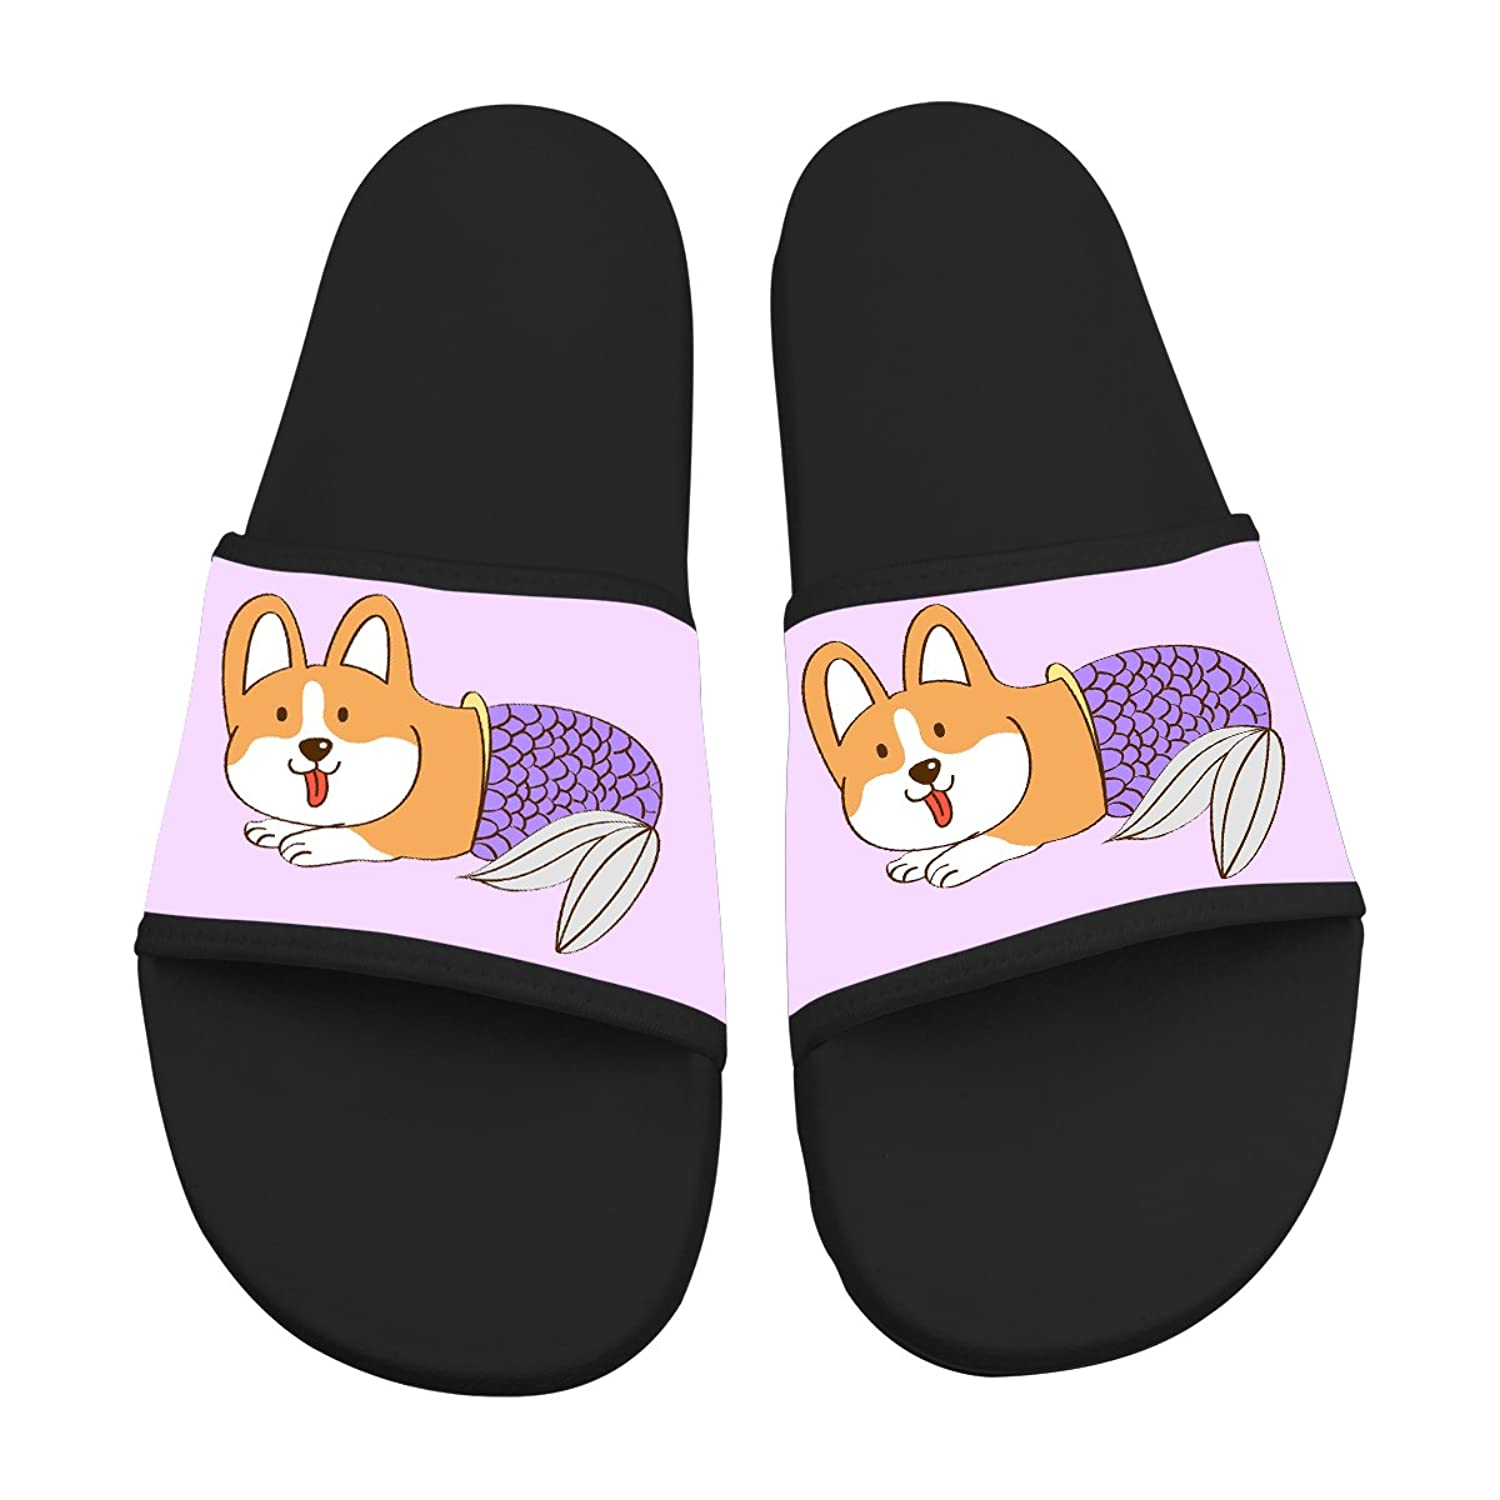 7e27b4995d4be Corgi Series Comic Mermaid Dog Casual Slippers Indoor Shower Shoes Outdoor  Walking Flat Sandals durable modeling